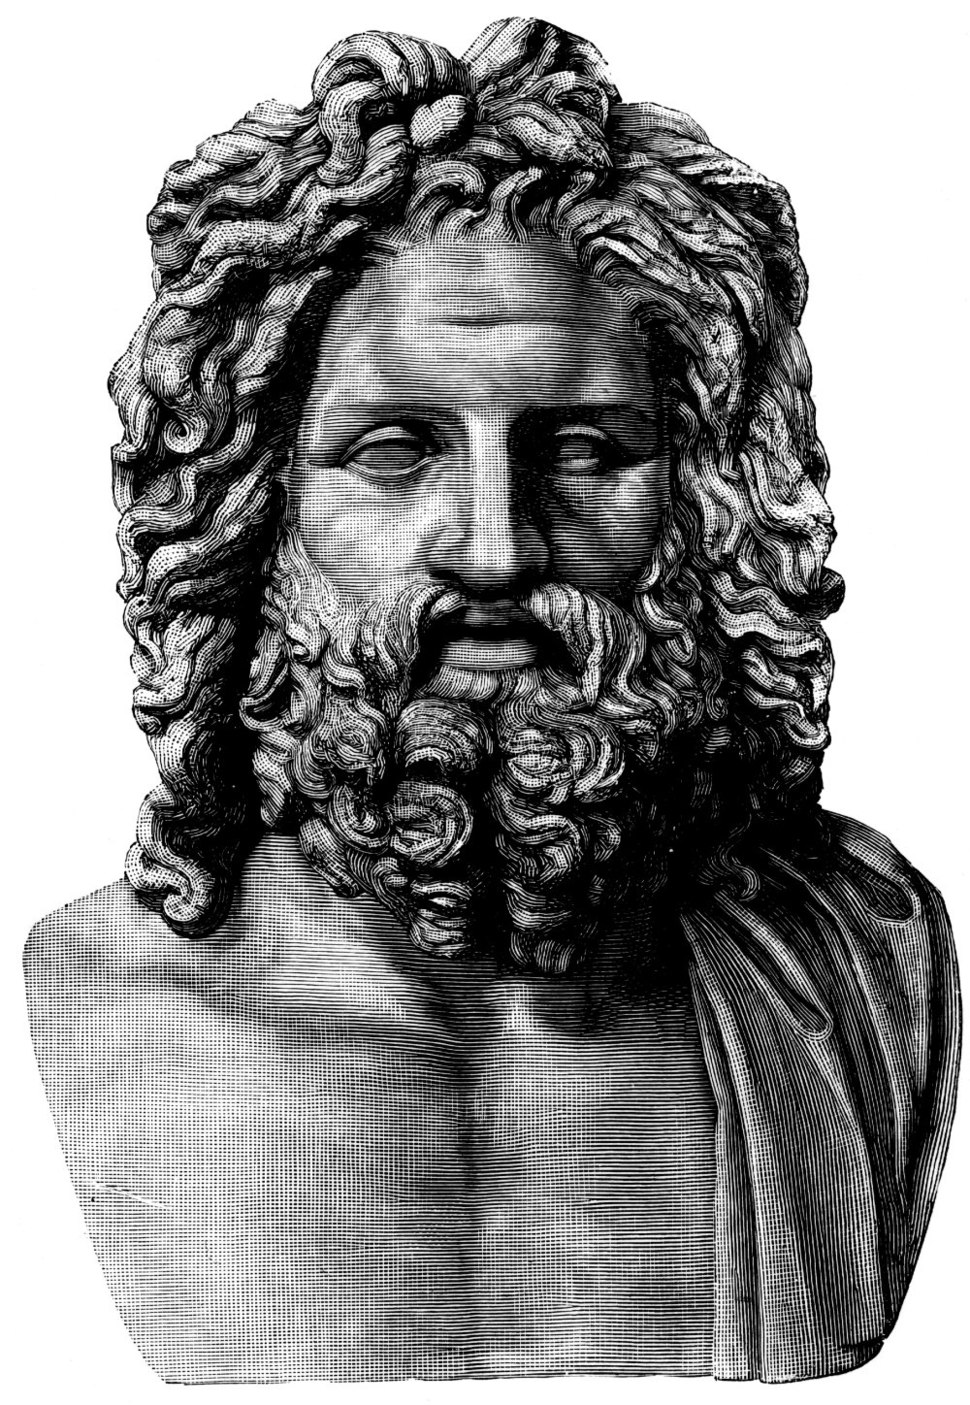 Otricoli Zeus - 1889 drawing